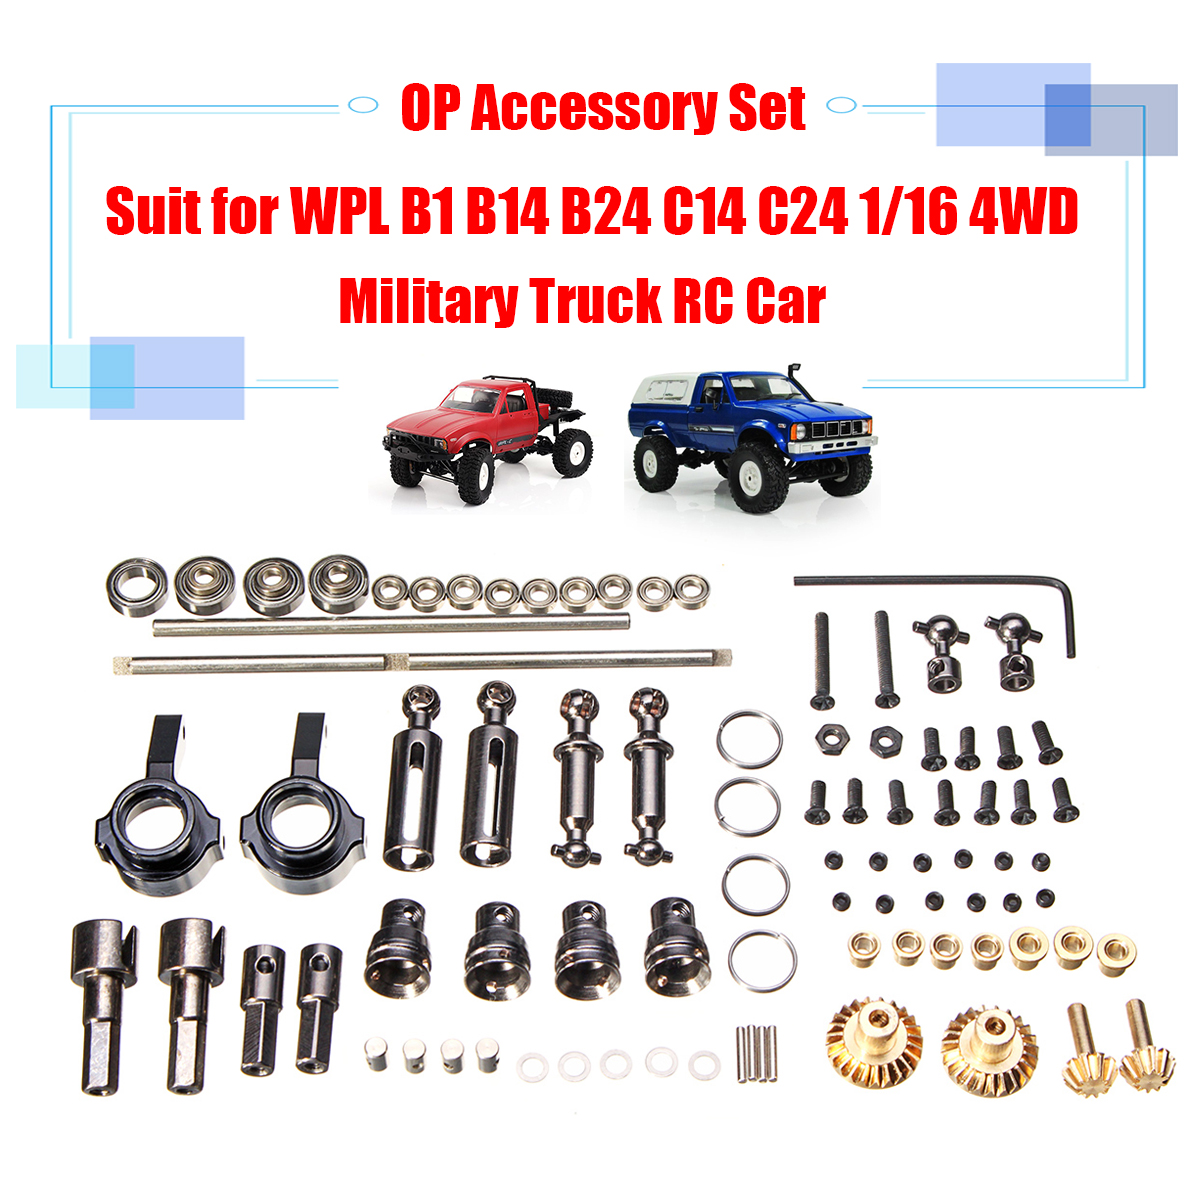 For WPL RC Car B1 B14 B24 C14 C24 1/16 4WD Military Truck RC Cars Spare Part Set Upgrade Metal OP Accessory Set Perfect-fit